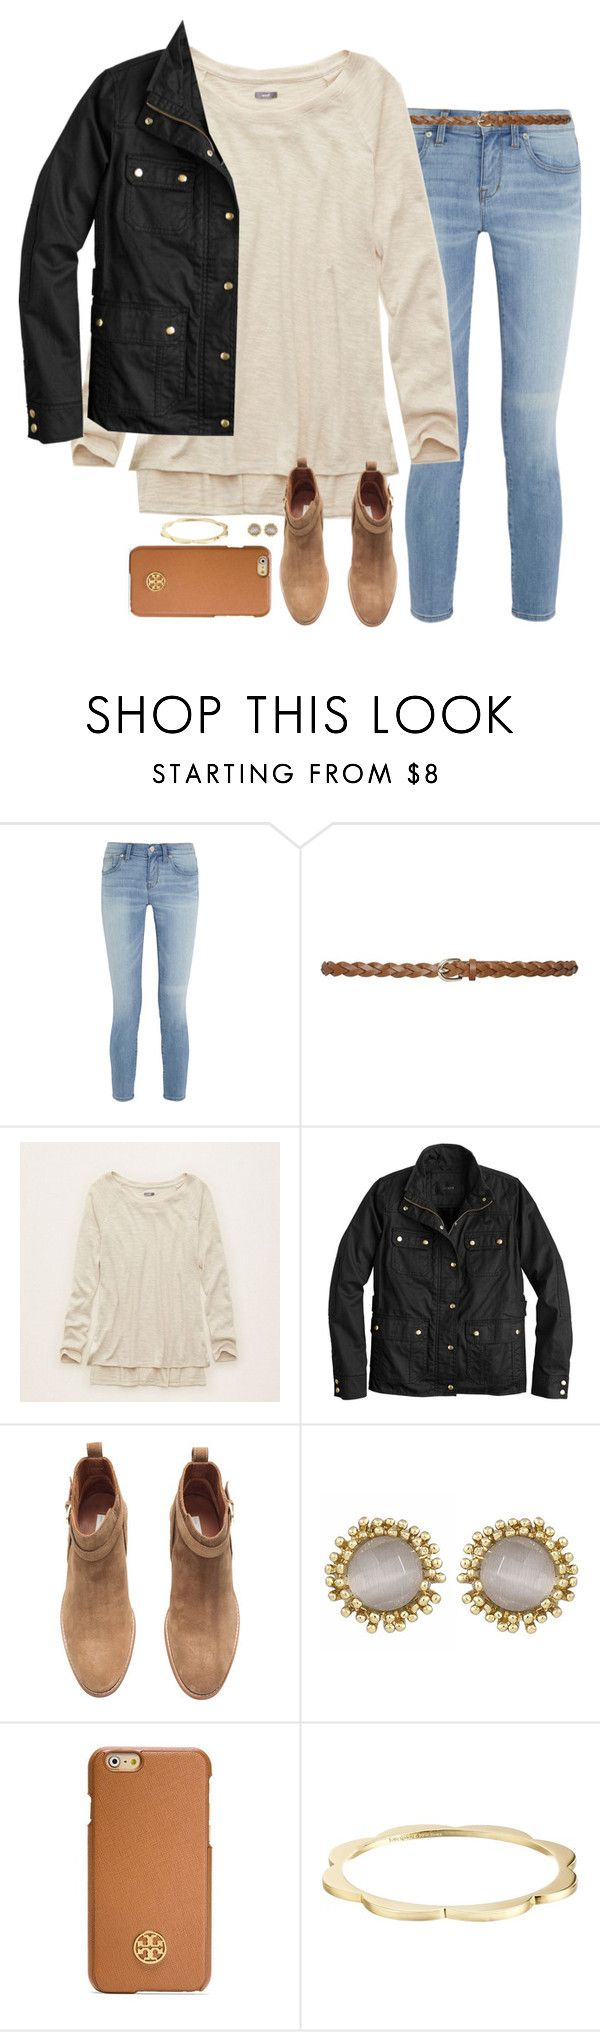 """its early"" by serenag123 ❤ liked on Polyvore featuring moda, Madewell, M&Co, Aerie, J.Crew, H&M, Kendra Scott, Tory Burch y Kate Spade"